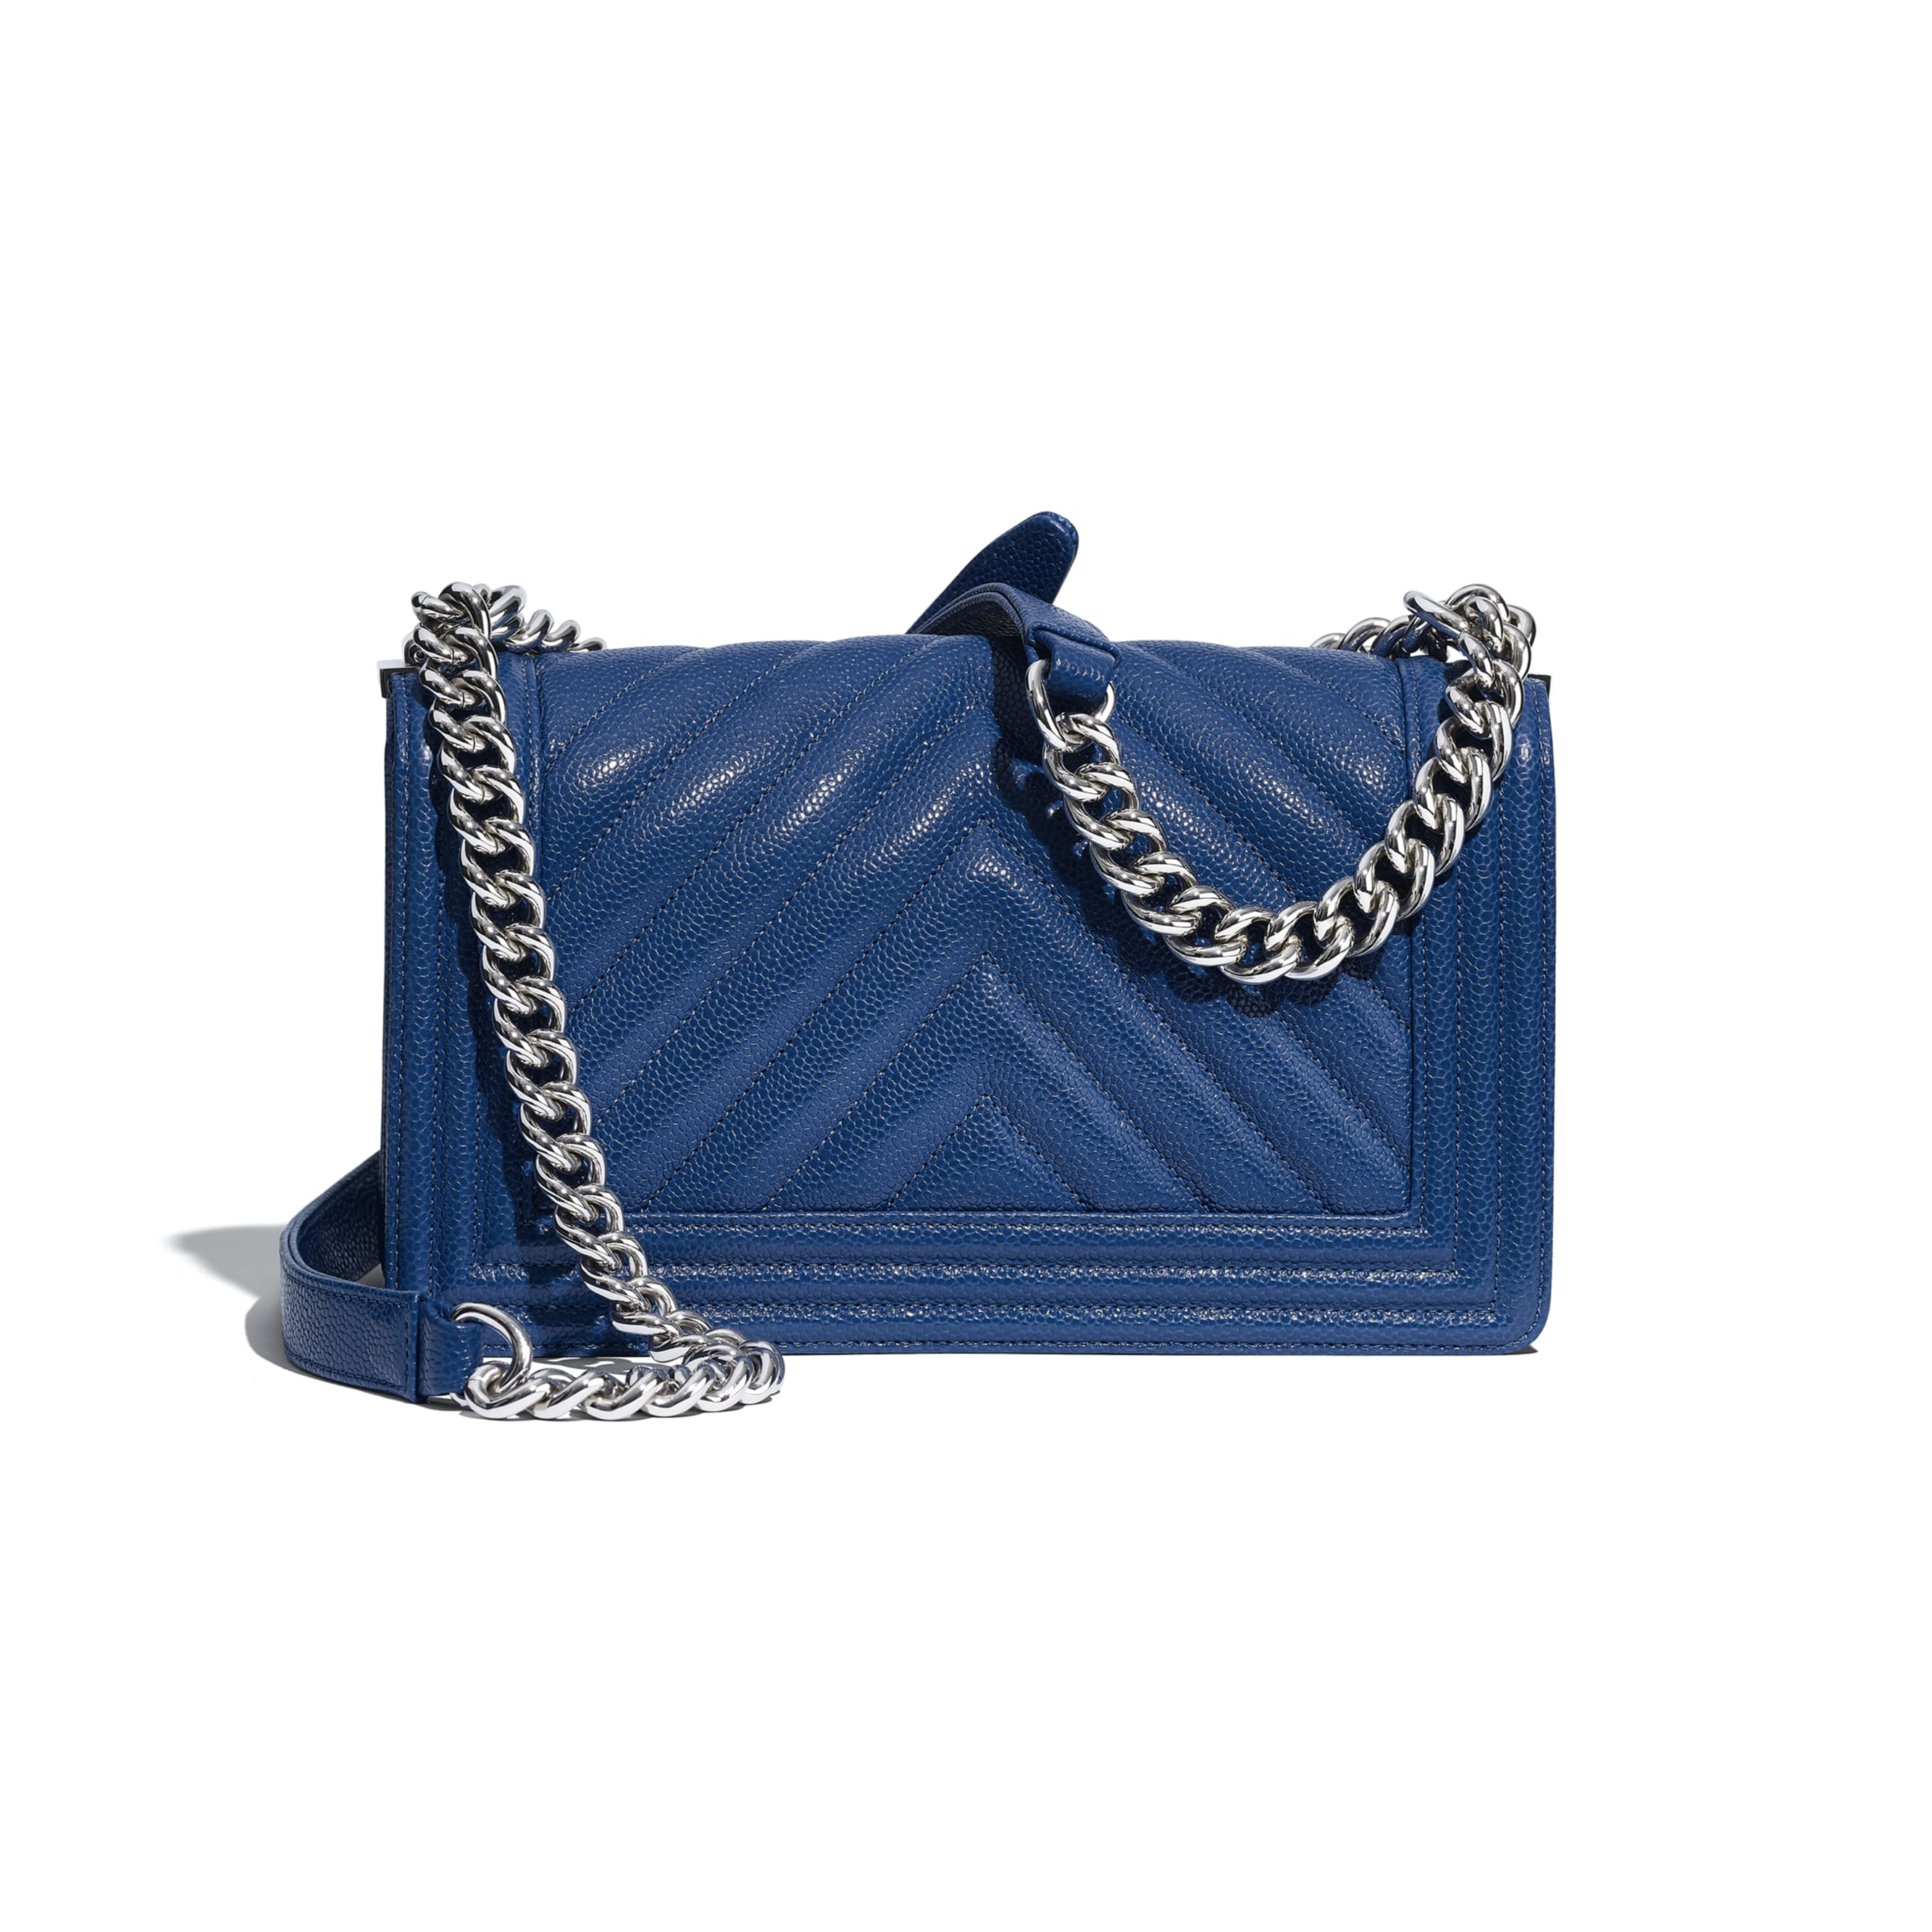 BOY CHANEL Handbag - Dark Blue - Grained Calfskin & Silver Metal - Alternative view - see standard sized version